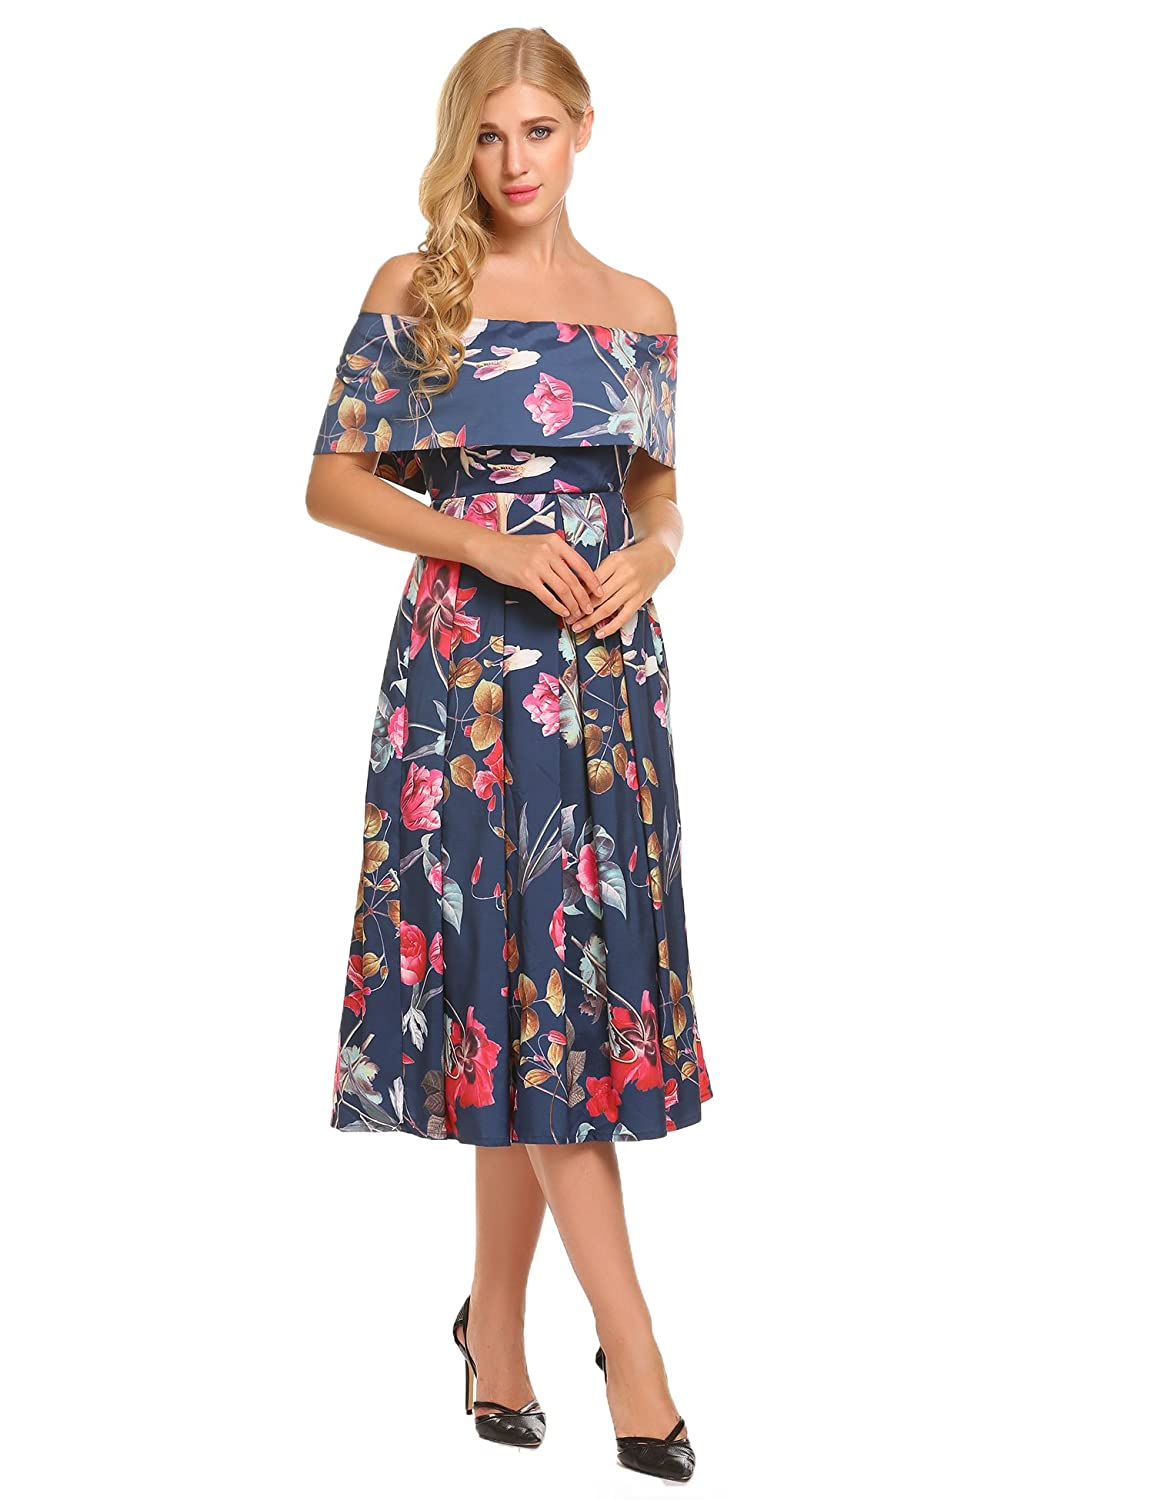 9aaa8a2576f52 Brand: Geesenss Material: 100% Polyester 2 Colors: Yellow, Blue Collar:  Slash Neck Sleeve: Short Sleeve Waist Type: High Waist Pattern: Floral  Length: Knee ...